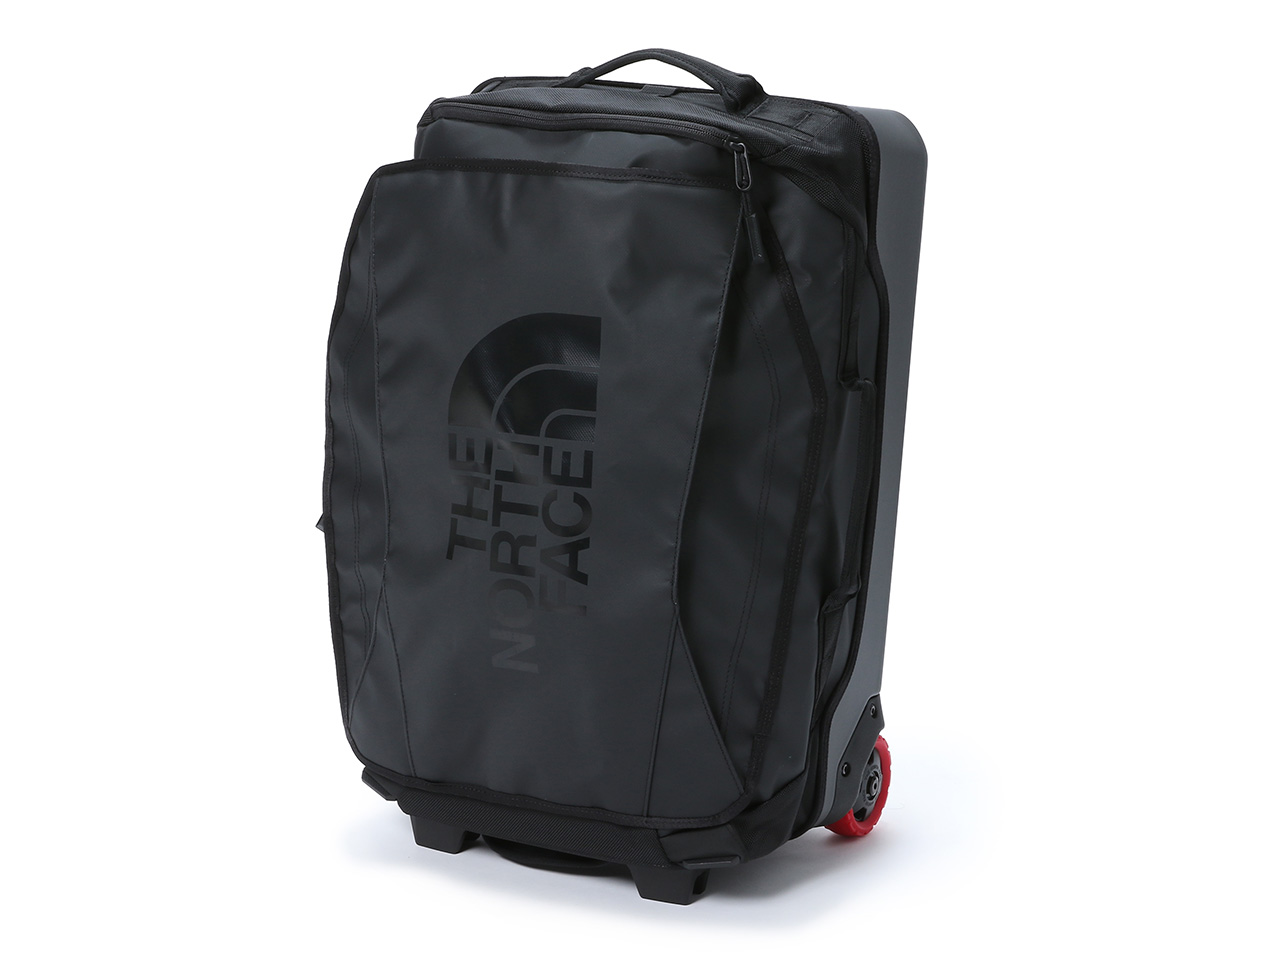 THE NORTH FACE Rolling Thunder 22(NM81810)【ザノースフェース ローリングサンダー22】【キャリーバッグ】【旅行カバン】【キャスター付】